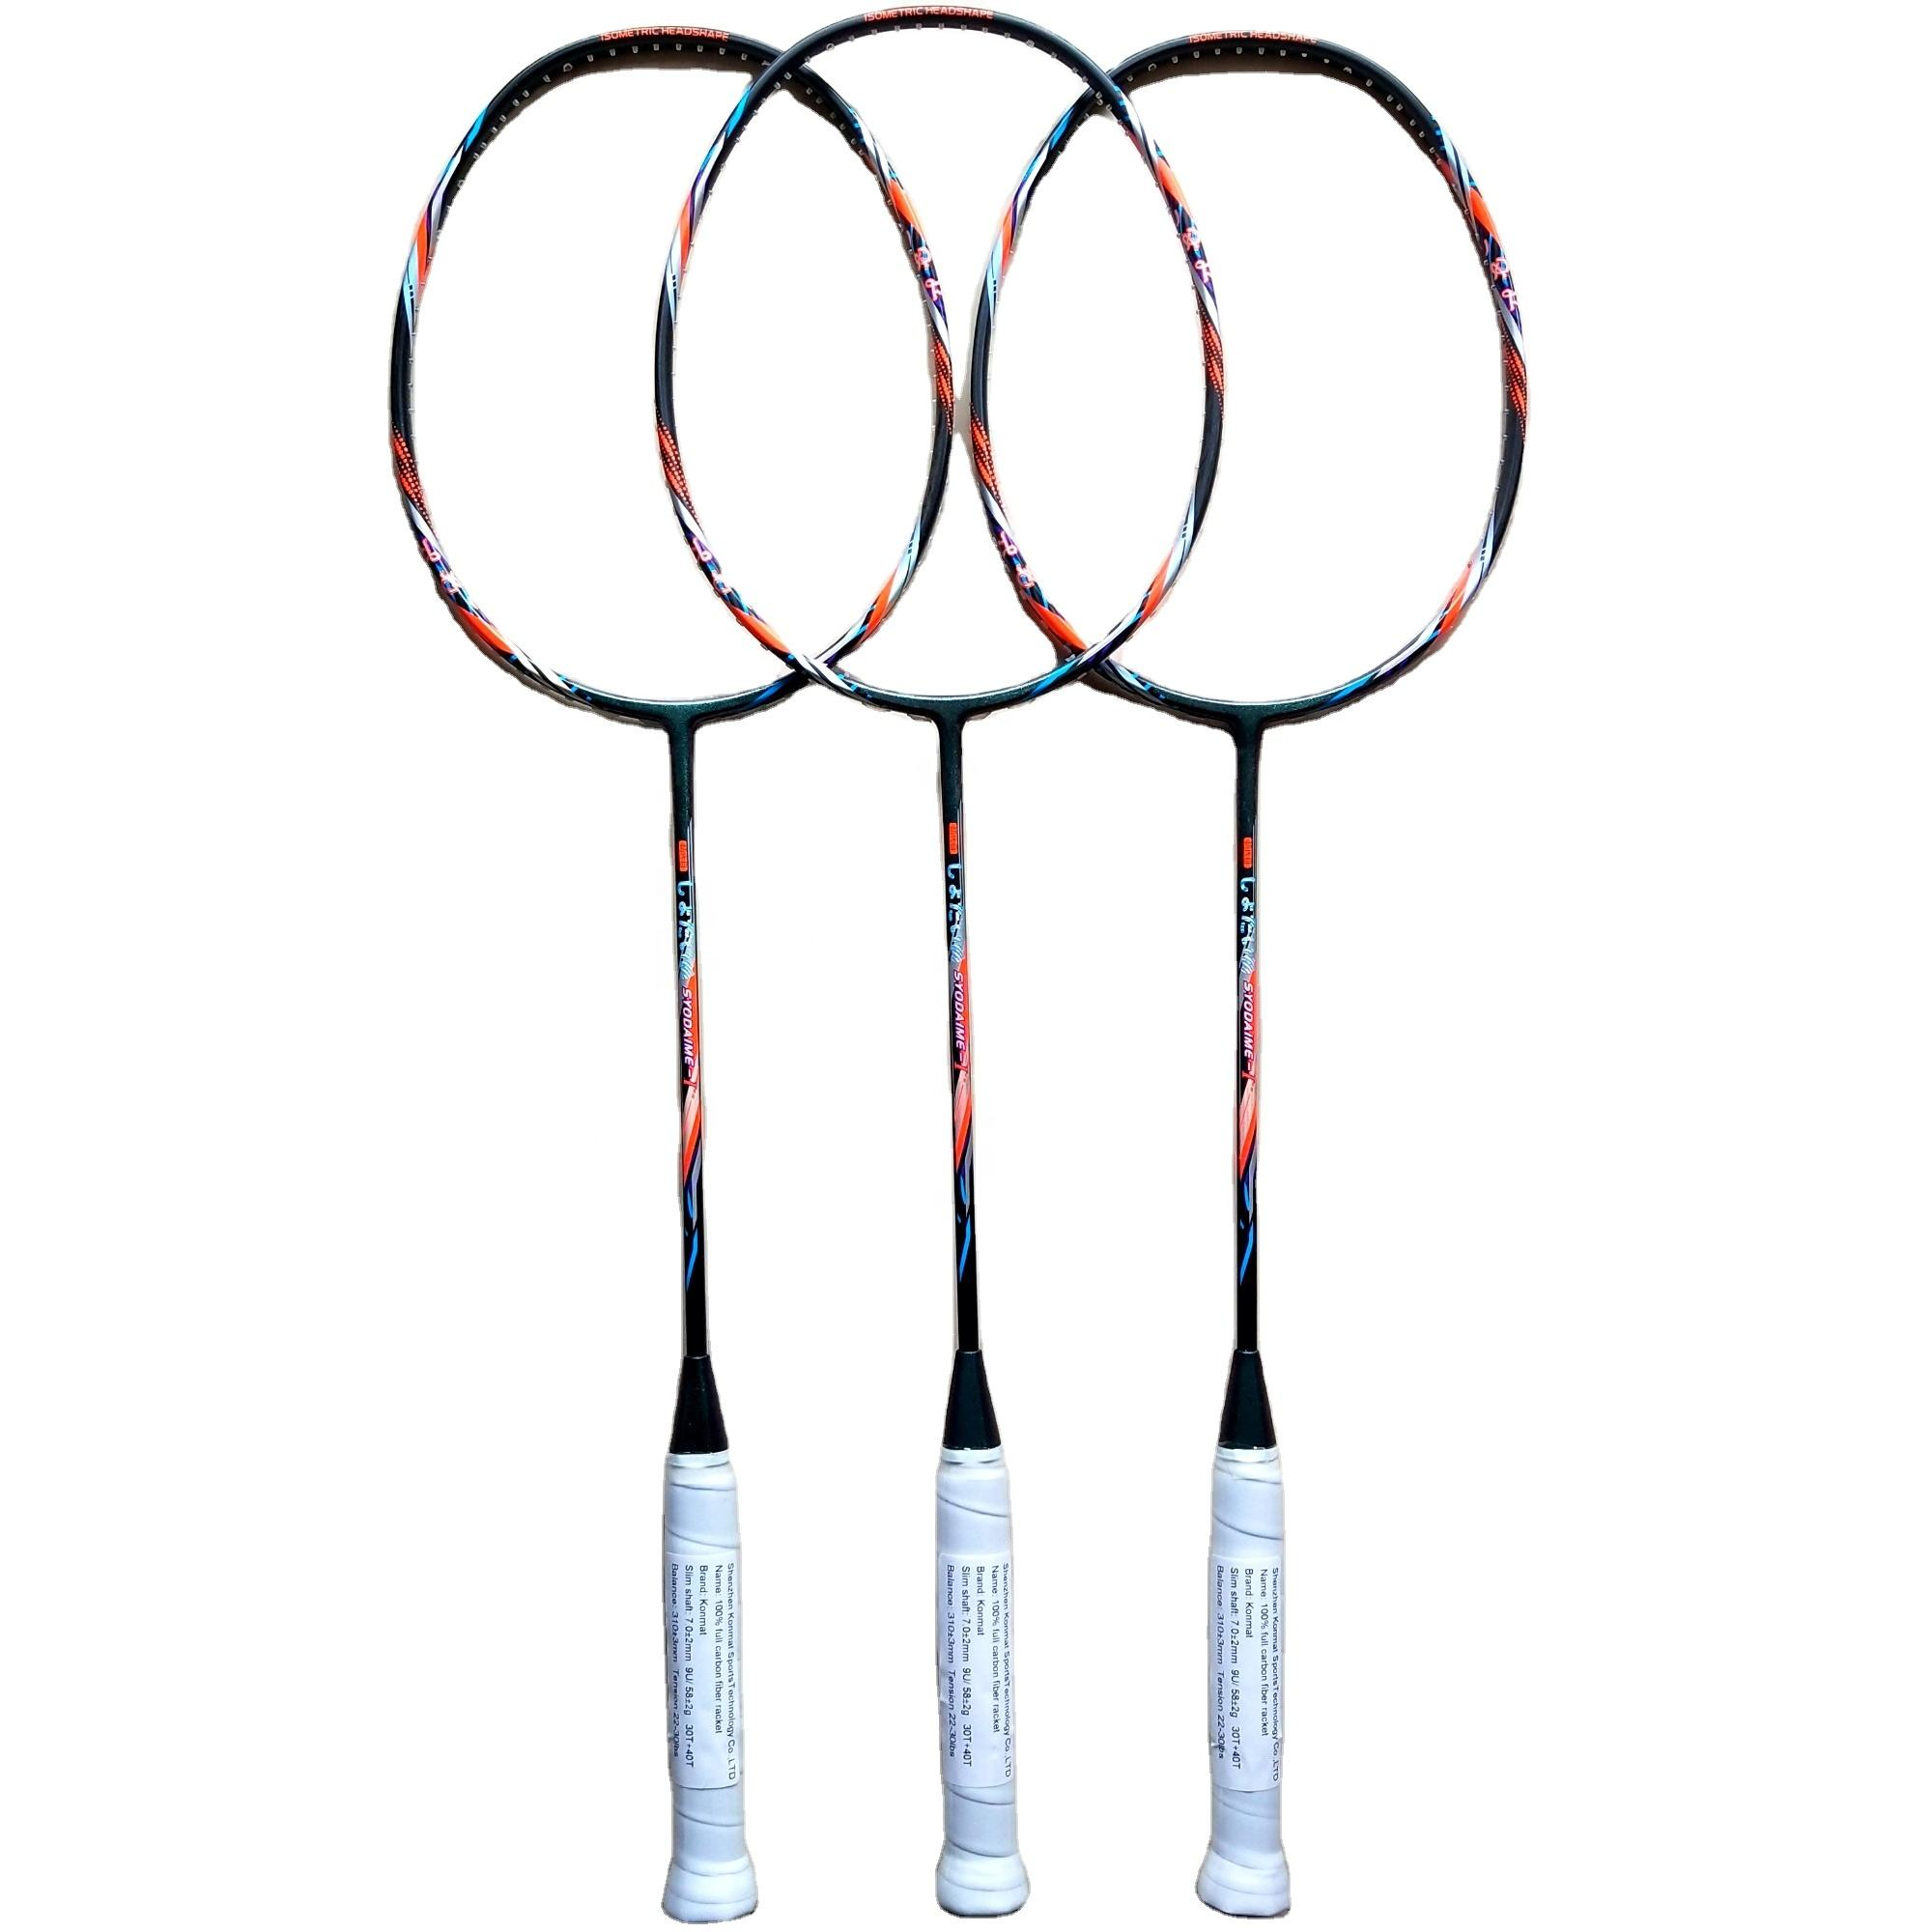 9U 58G 30LBS Japan Graphite Fiber Badminton <span class=keywords><strong>Racket</strong></span> Badminton Rackets Van Fabriek